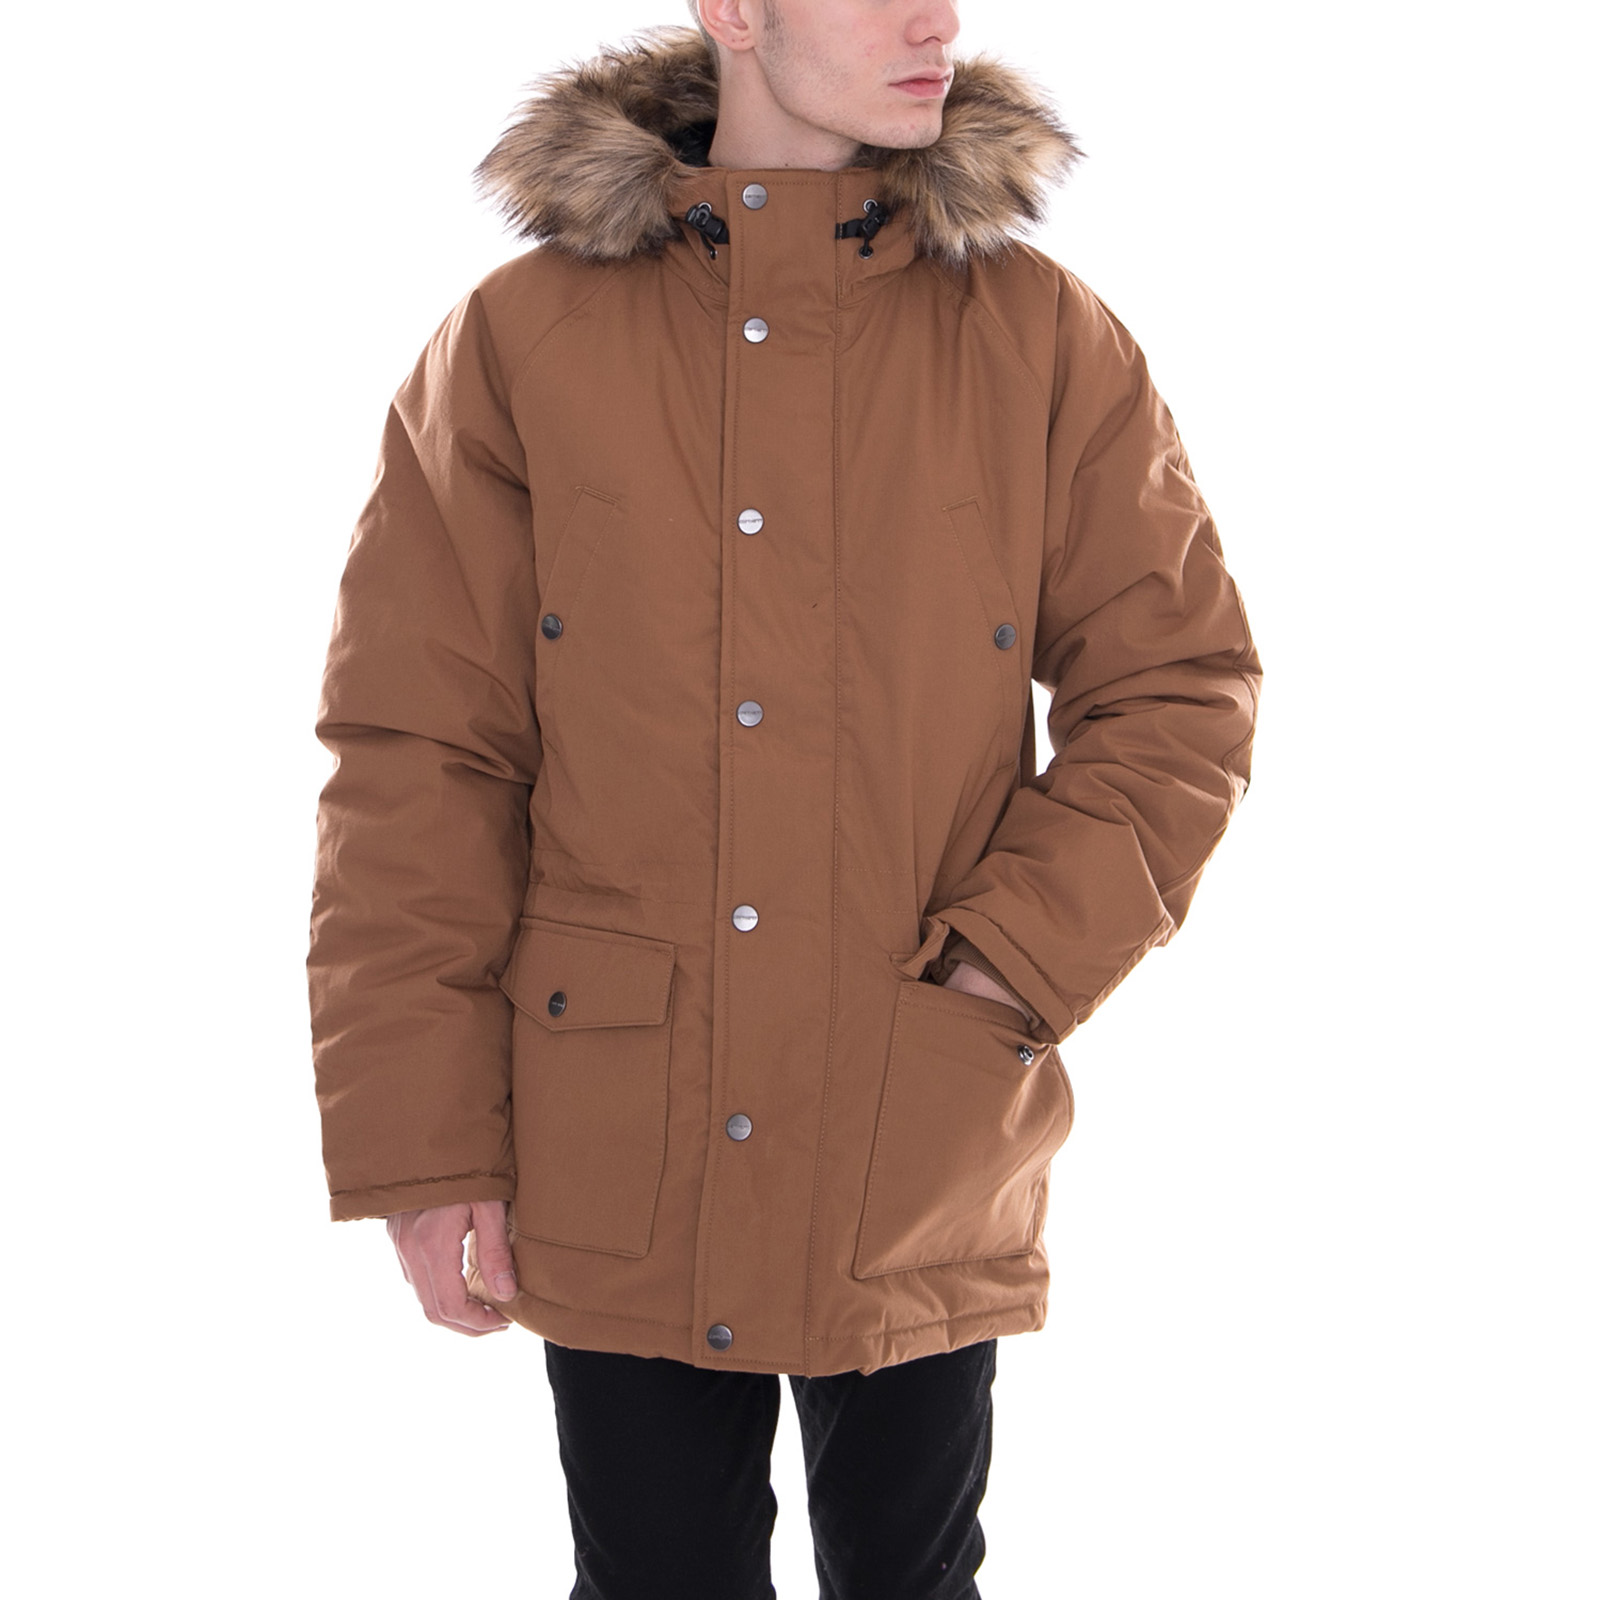 8cacb117a47 Details about Carhartt Jacket Trapper Parka Hamilton Brown/Black Brown